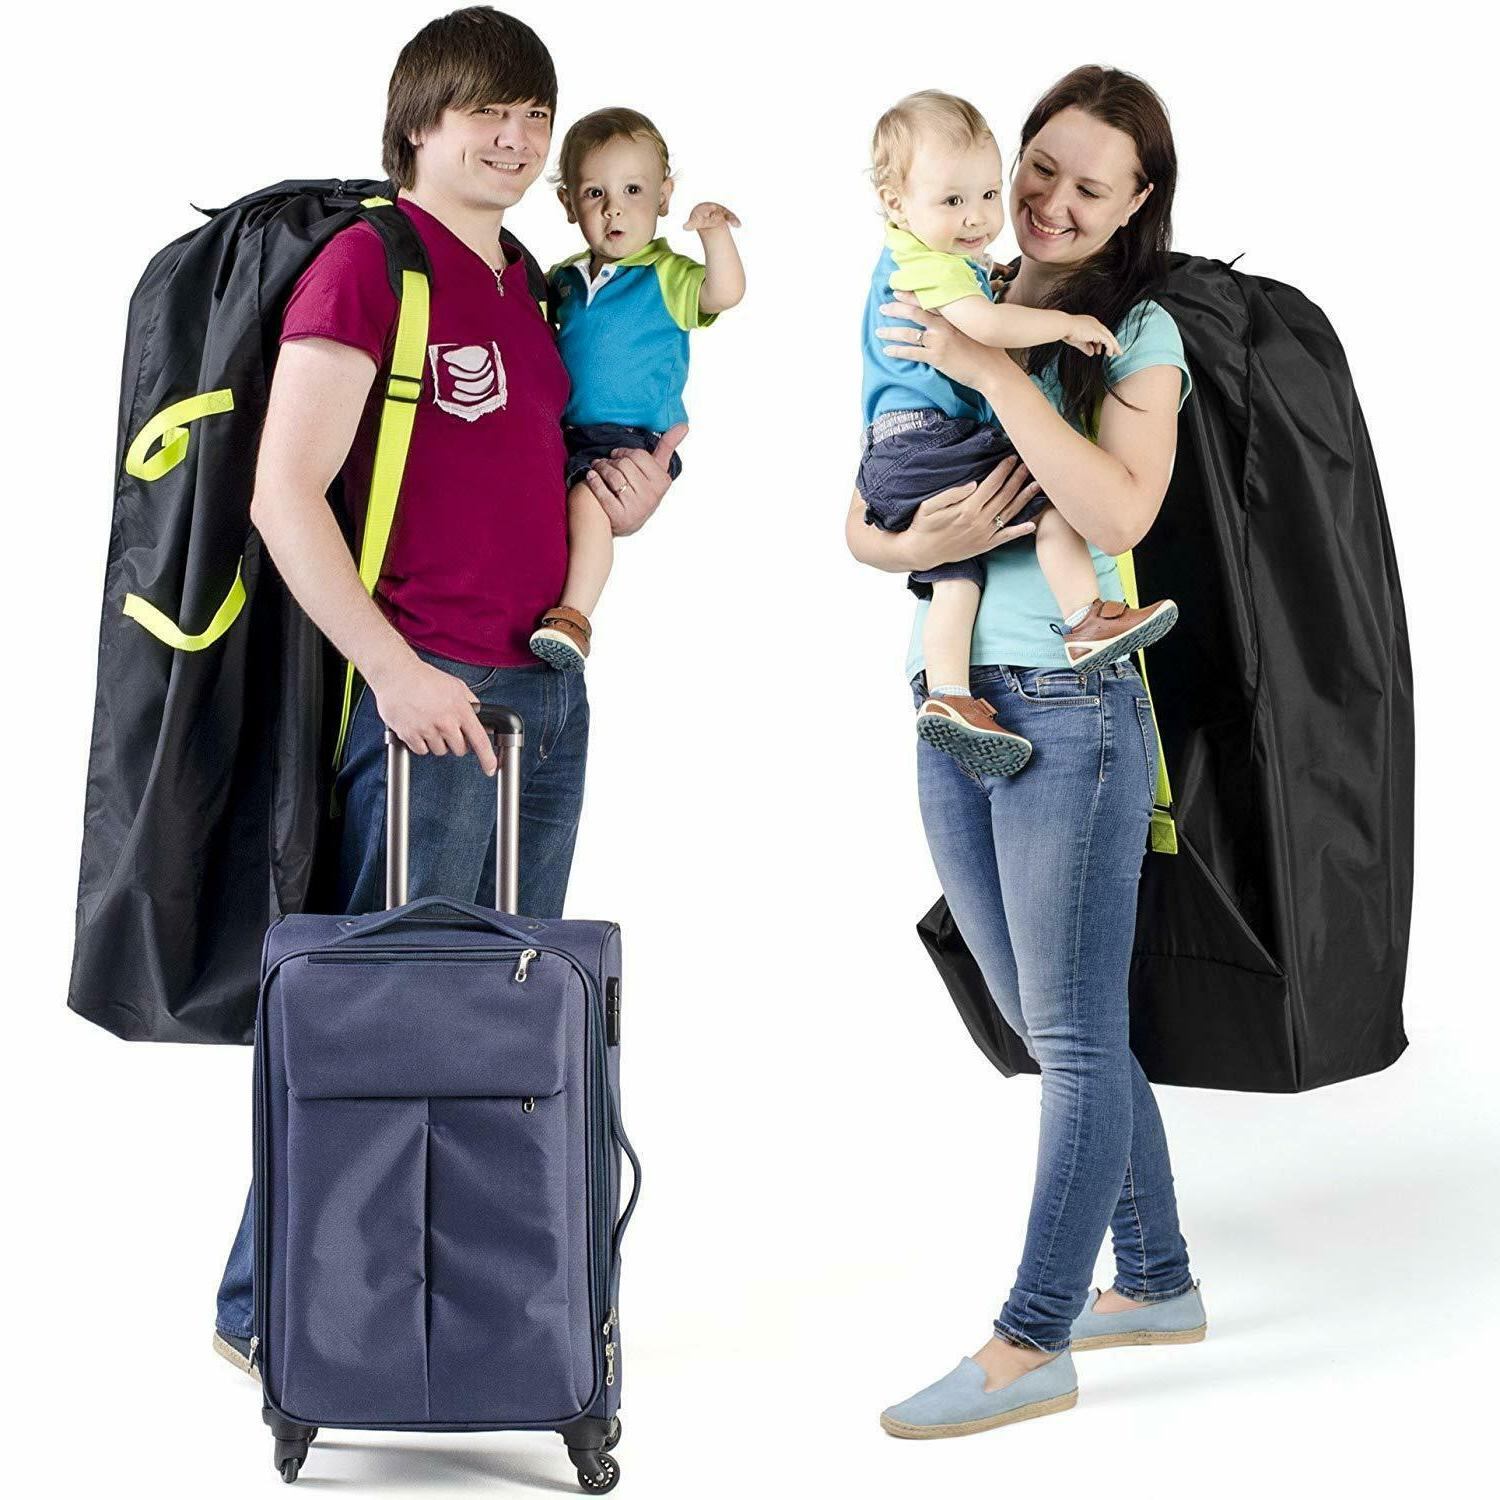 Durable Bag for Airplane - Double/Dual